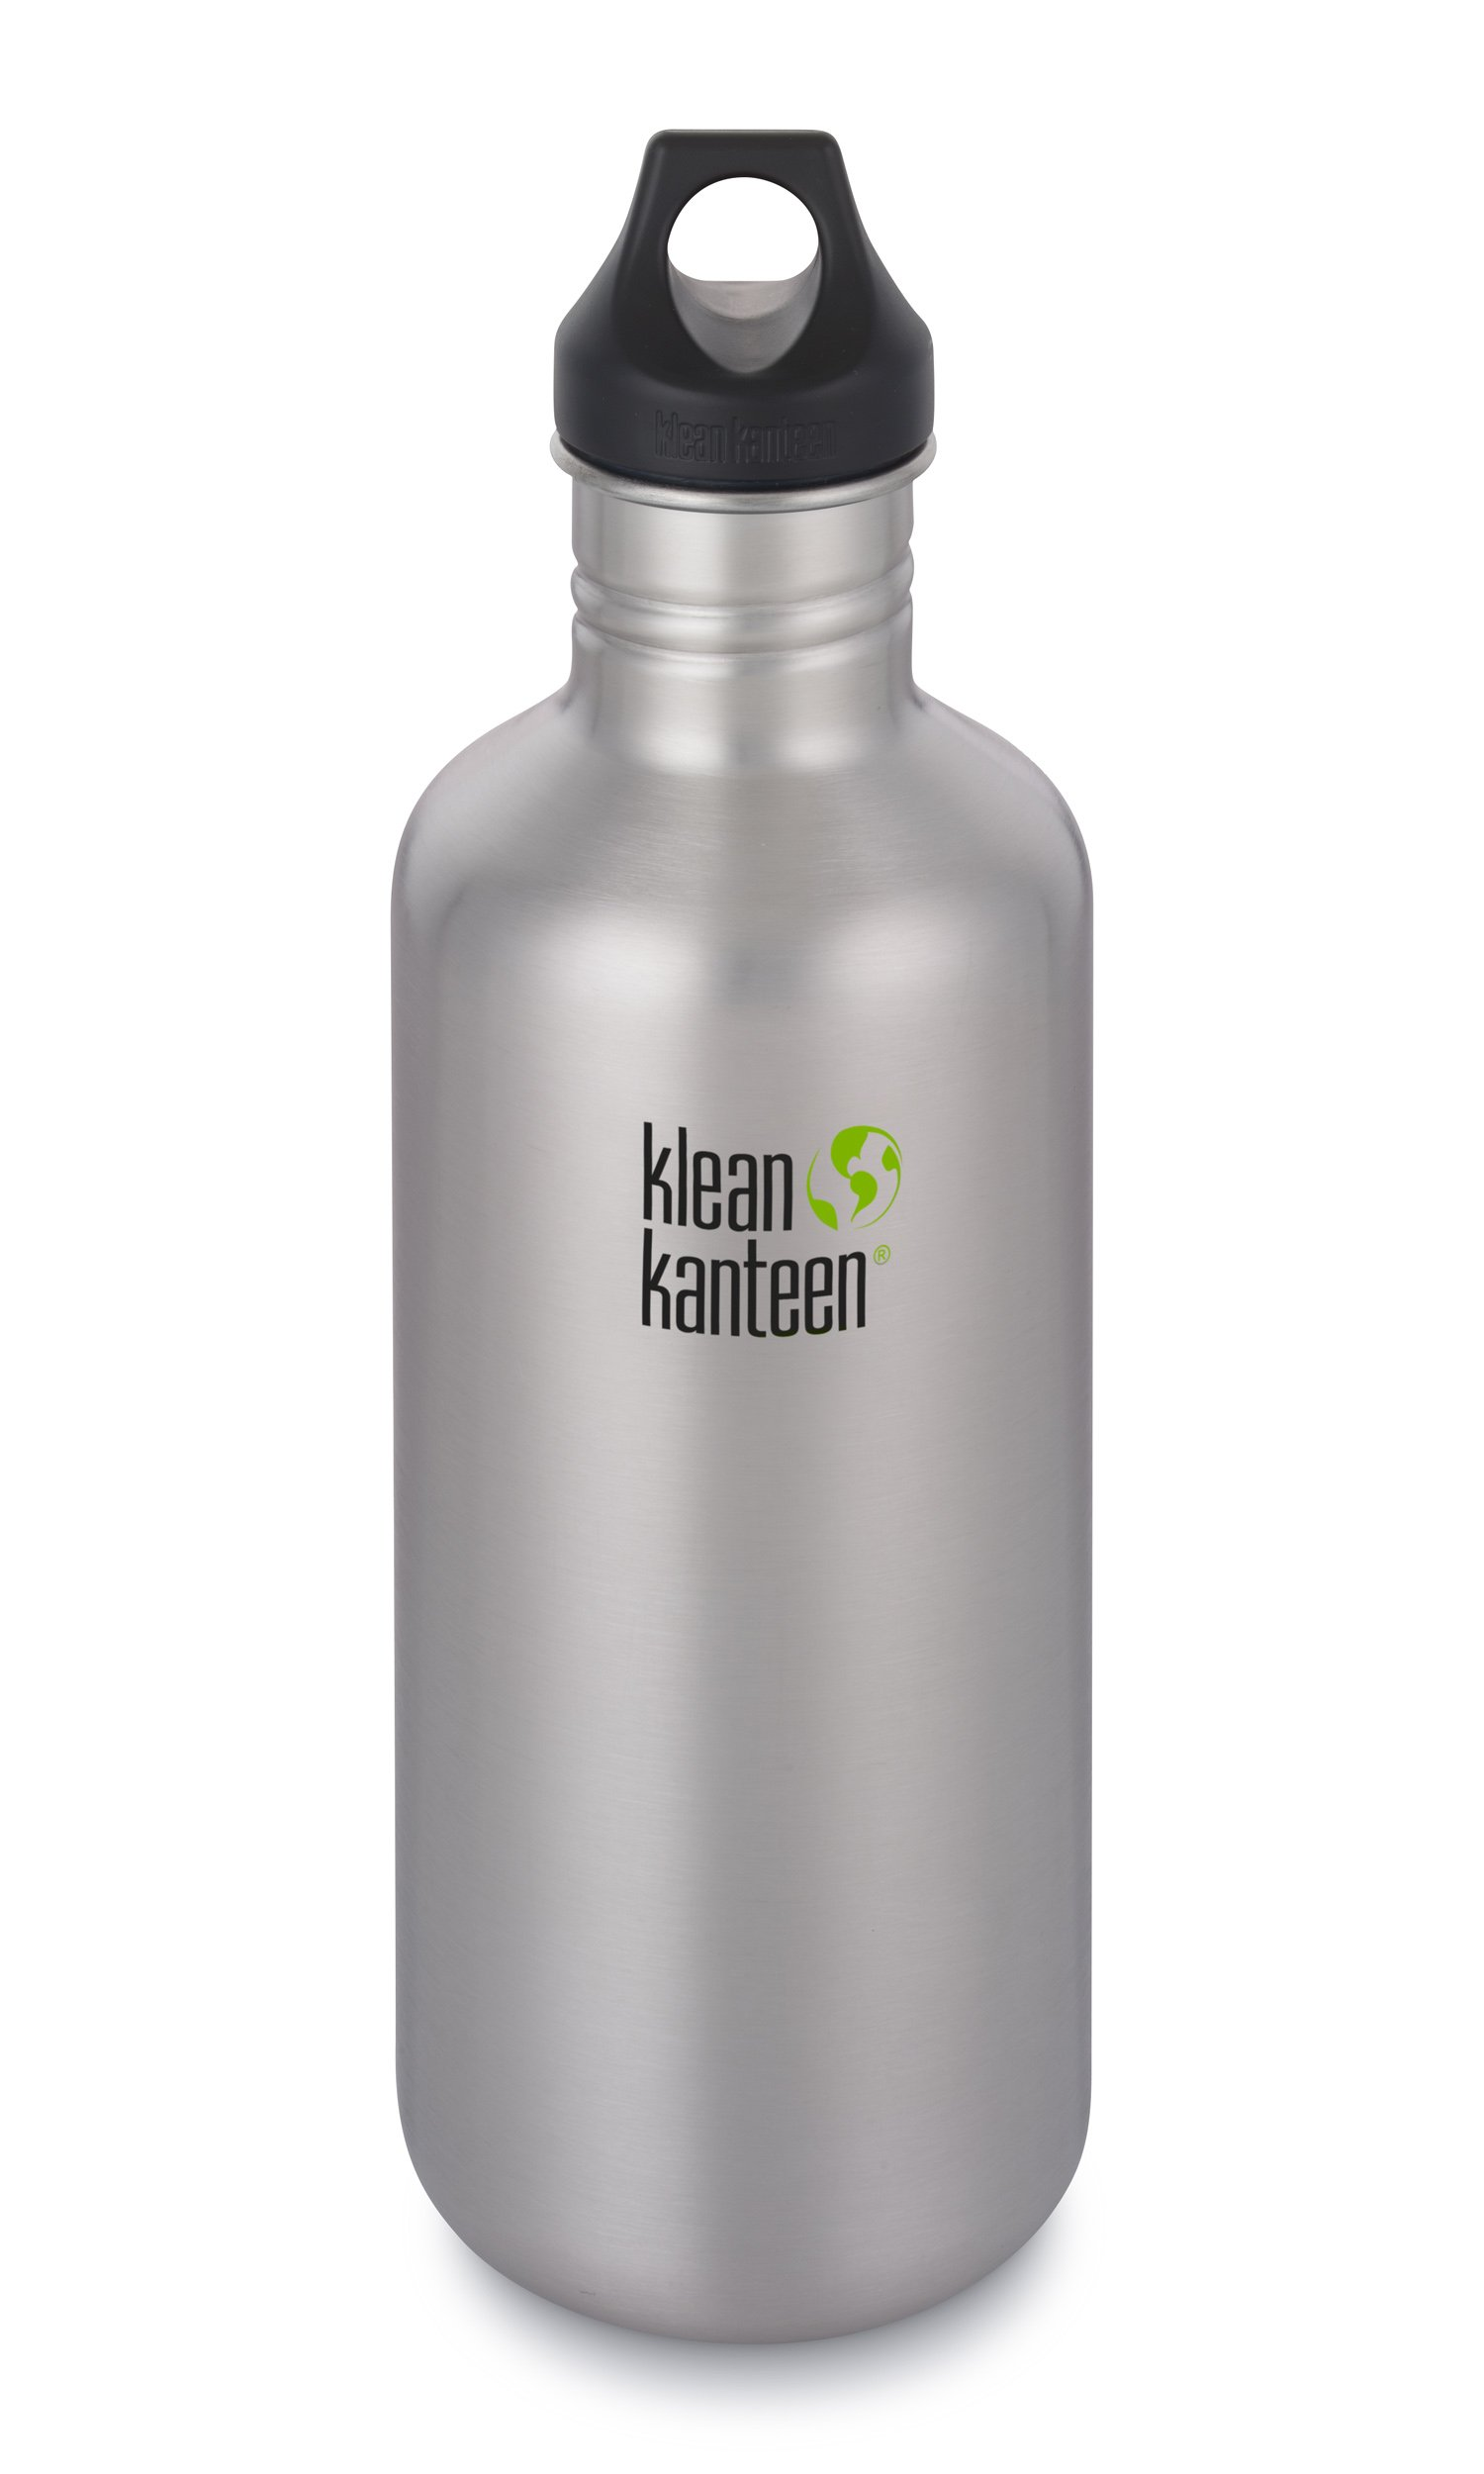 Klean Kanteen 64oz Classic Stainless Steel Water Bottle Single Wall and Leak Proof Loop Cap - Brushed Stainless (NEW 2018)